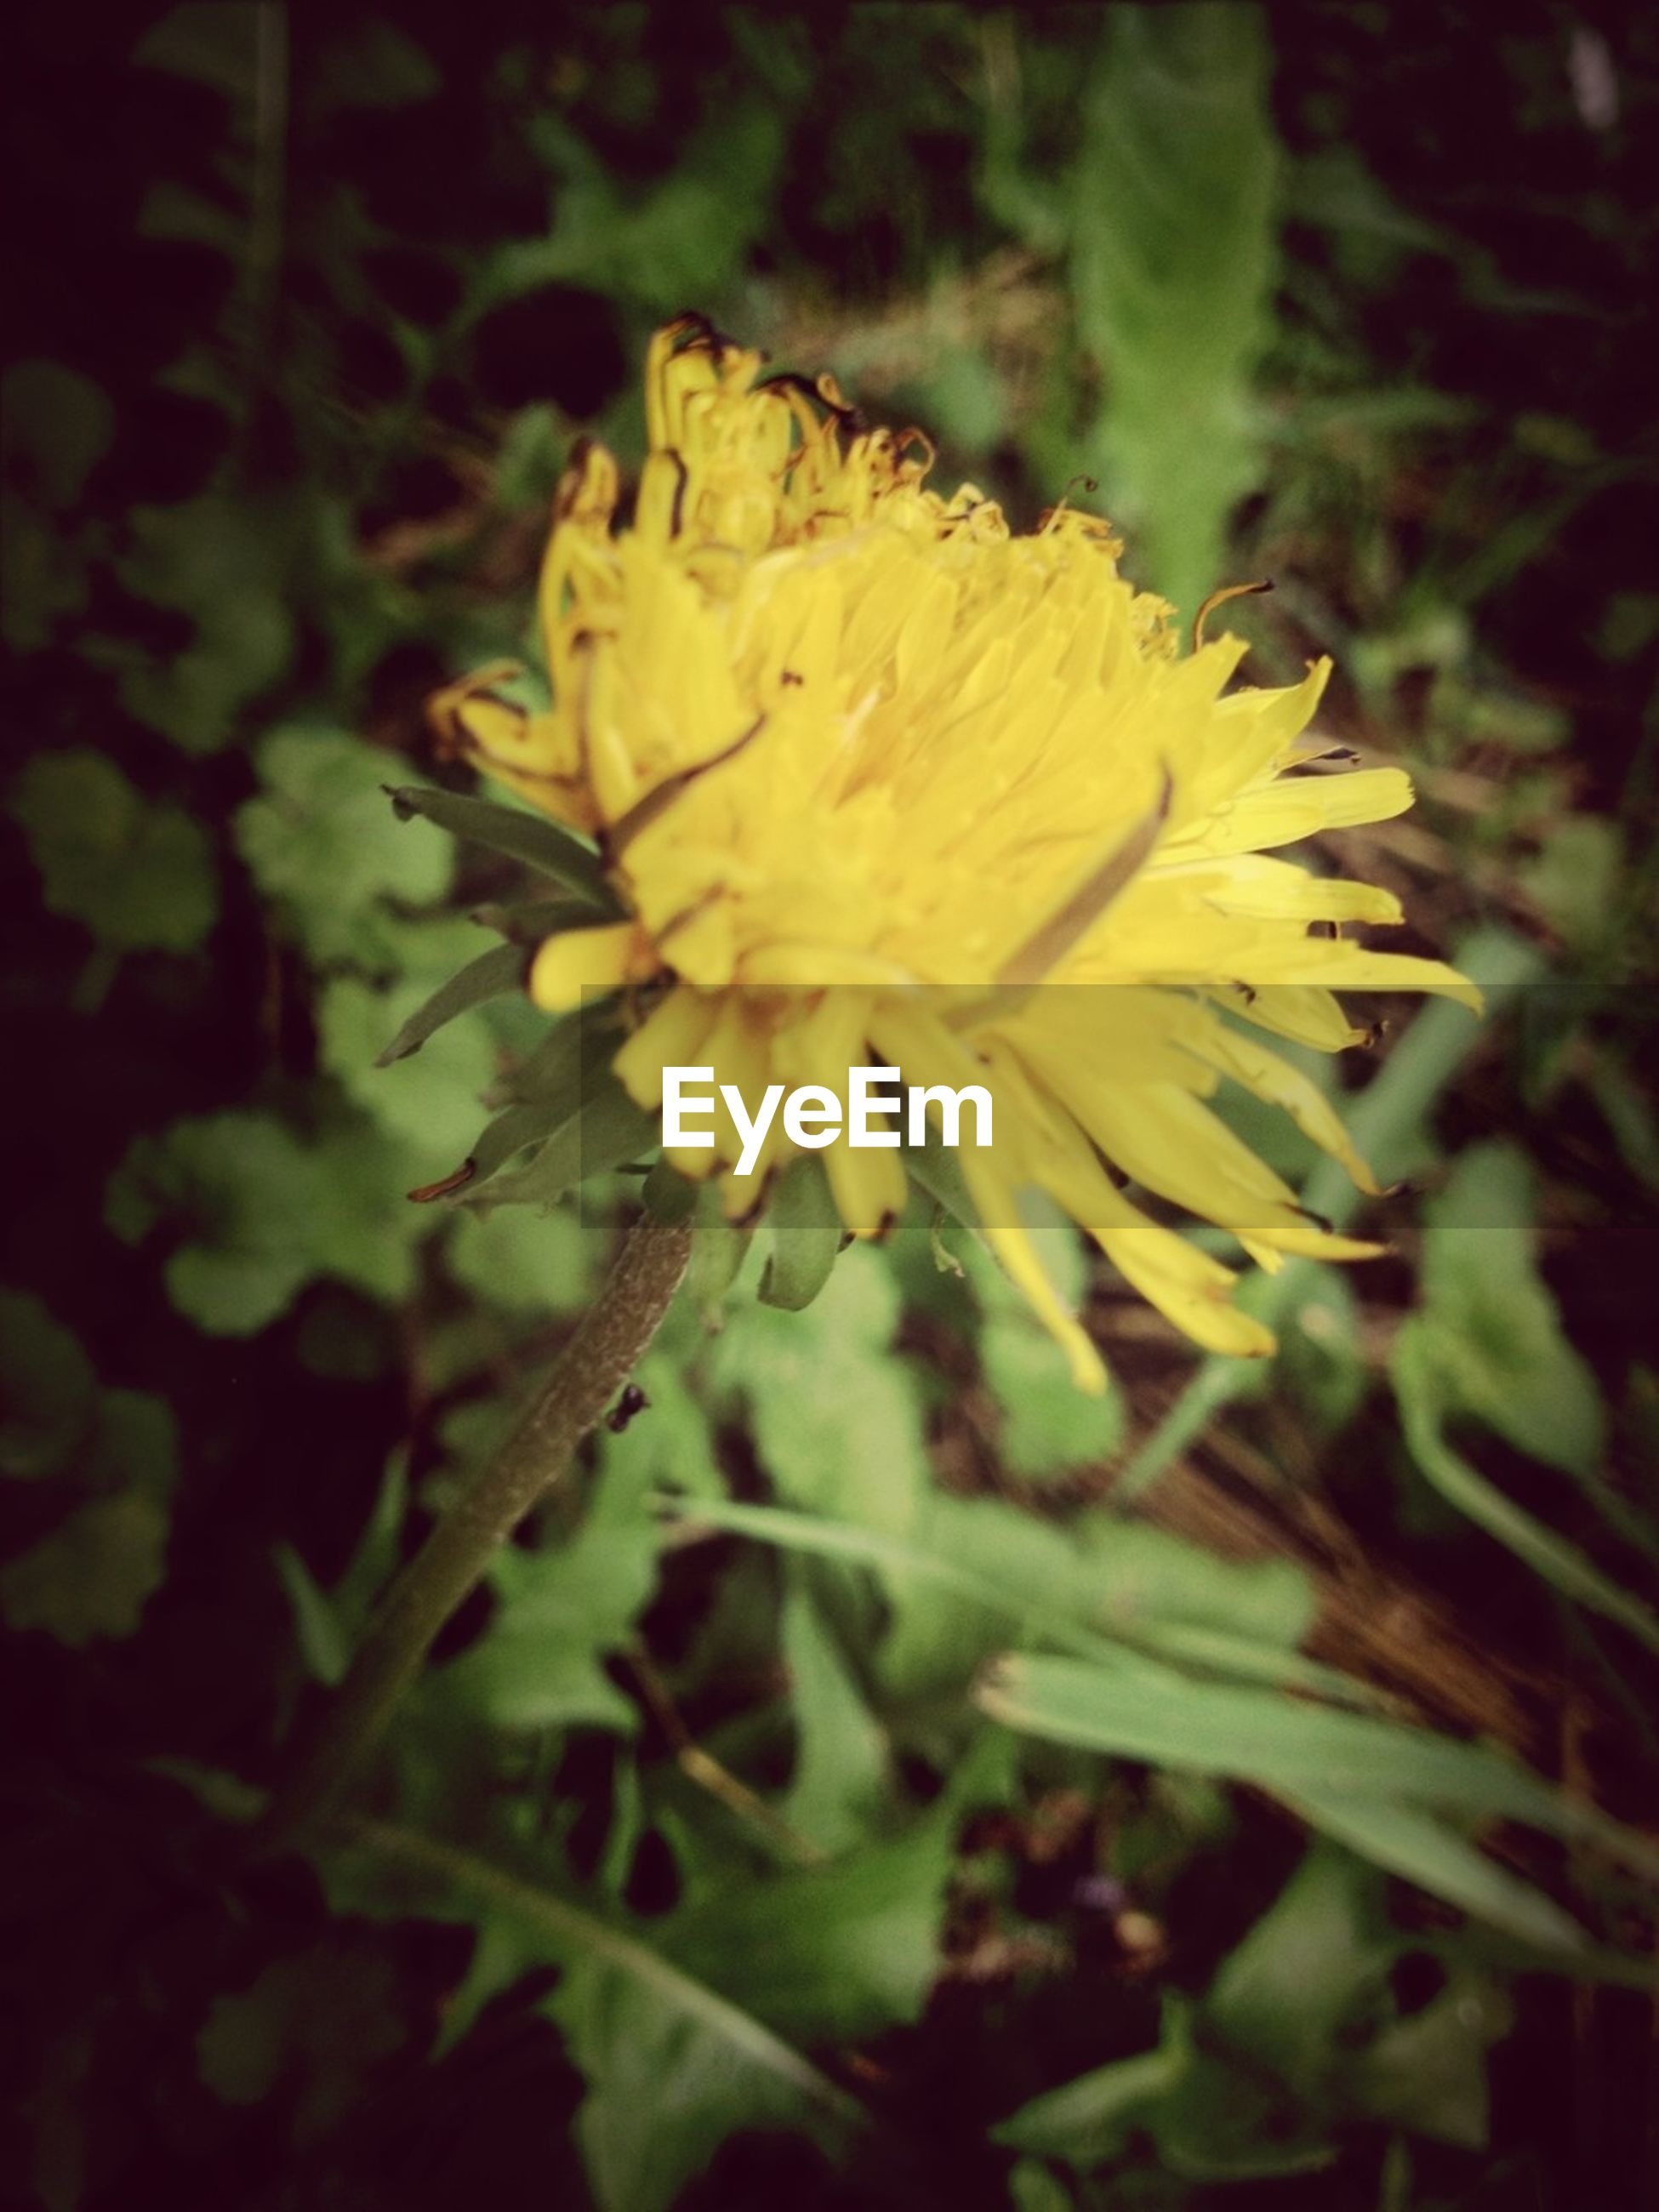 flower, petal, flower head, freshness, fragility, yellow, growth, beauty in nature, single flower, close-up, blooming, nature, plant, focus on foreground, in bloom, pollen, outdoors, selective focus, blossom, park - man made space